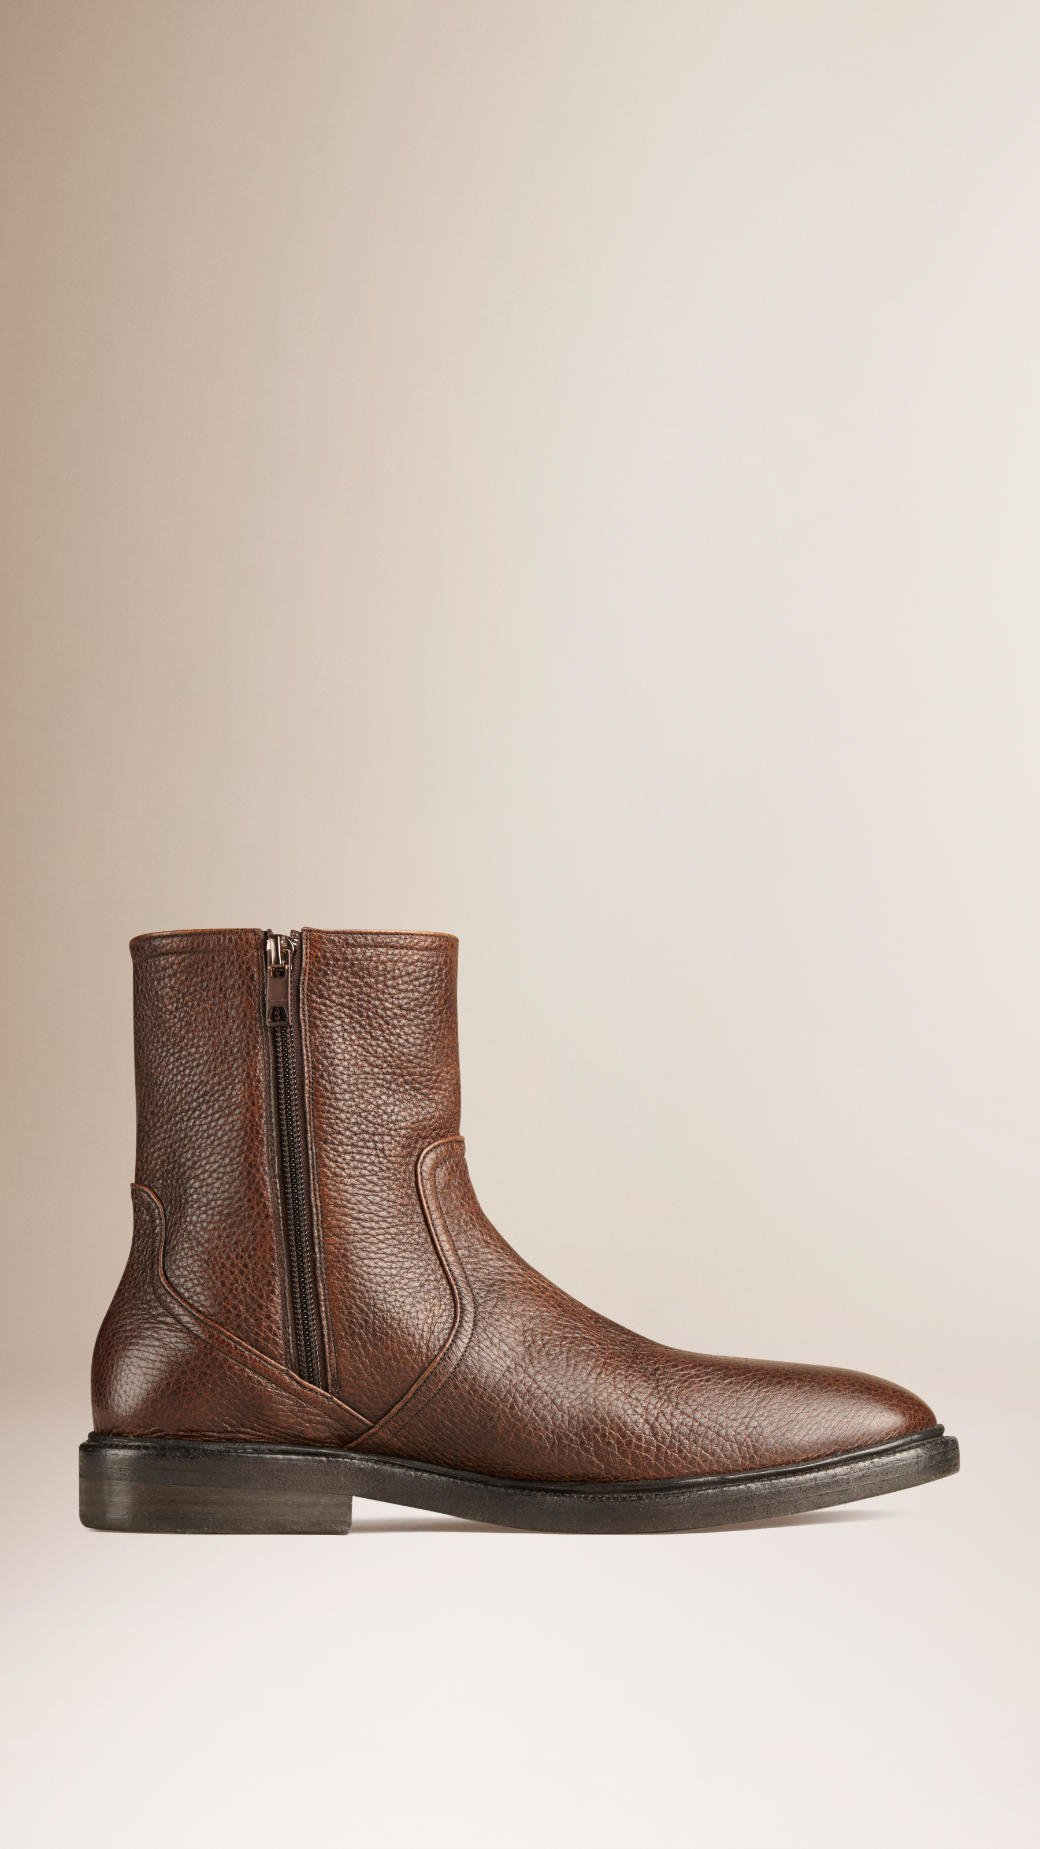 c34367d32 Burberry Shearling-lined Deerskin Boots in Brown for Men - Lyst